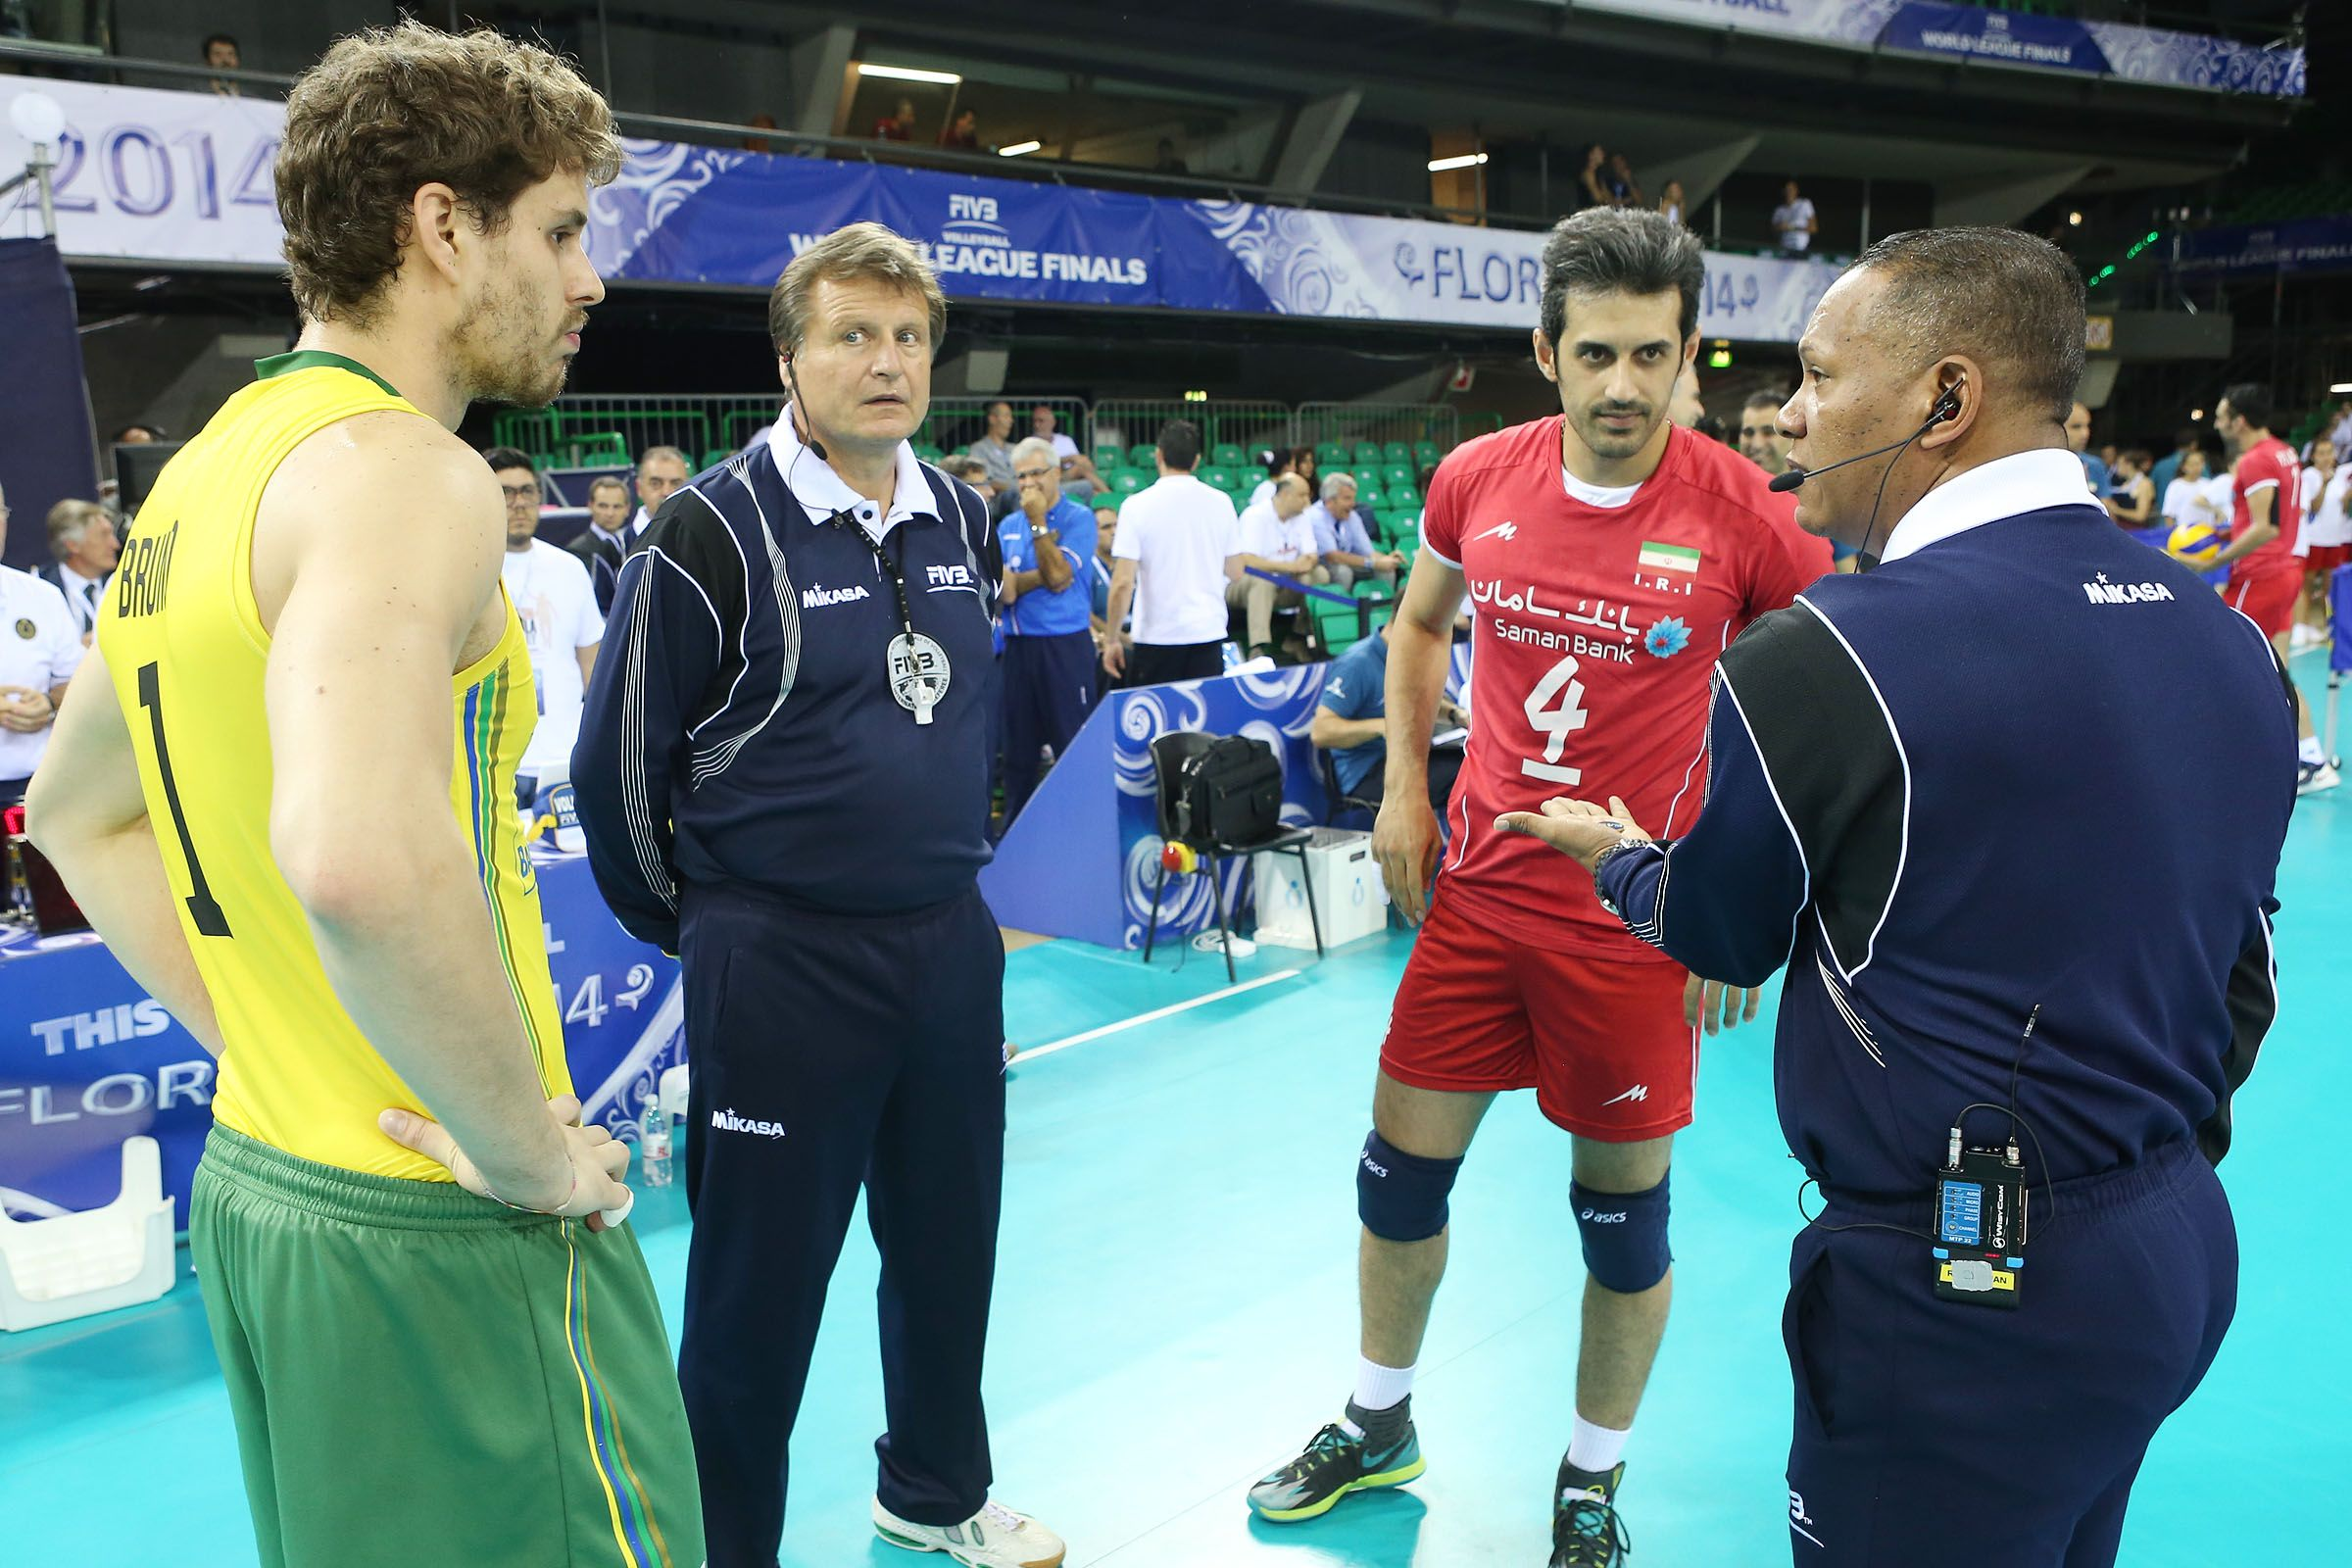 Iran Vs Brazil Final Round Volleyball World League 2014 Volleyball Sports Water Polo